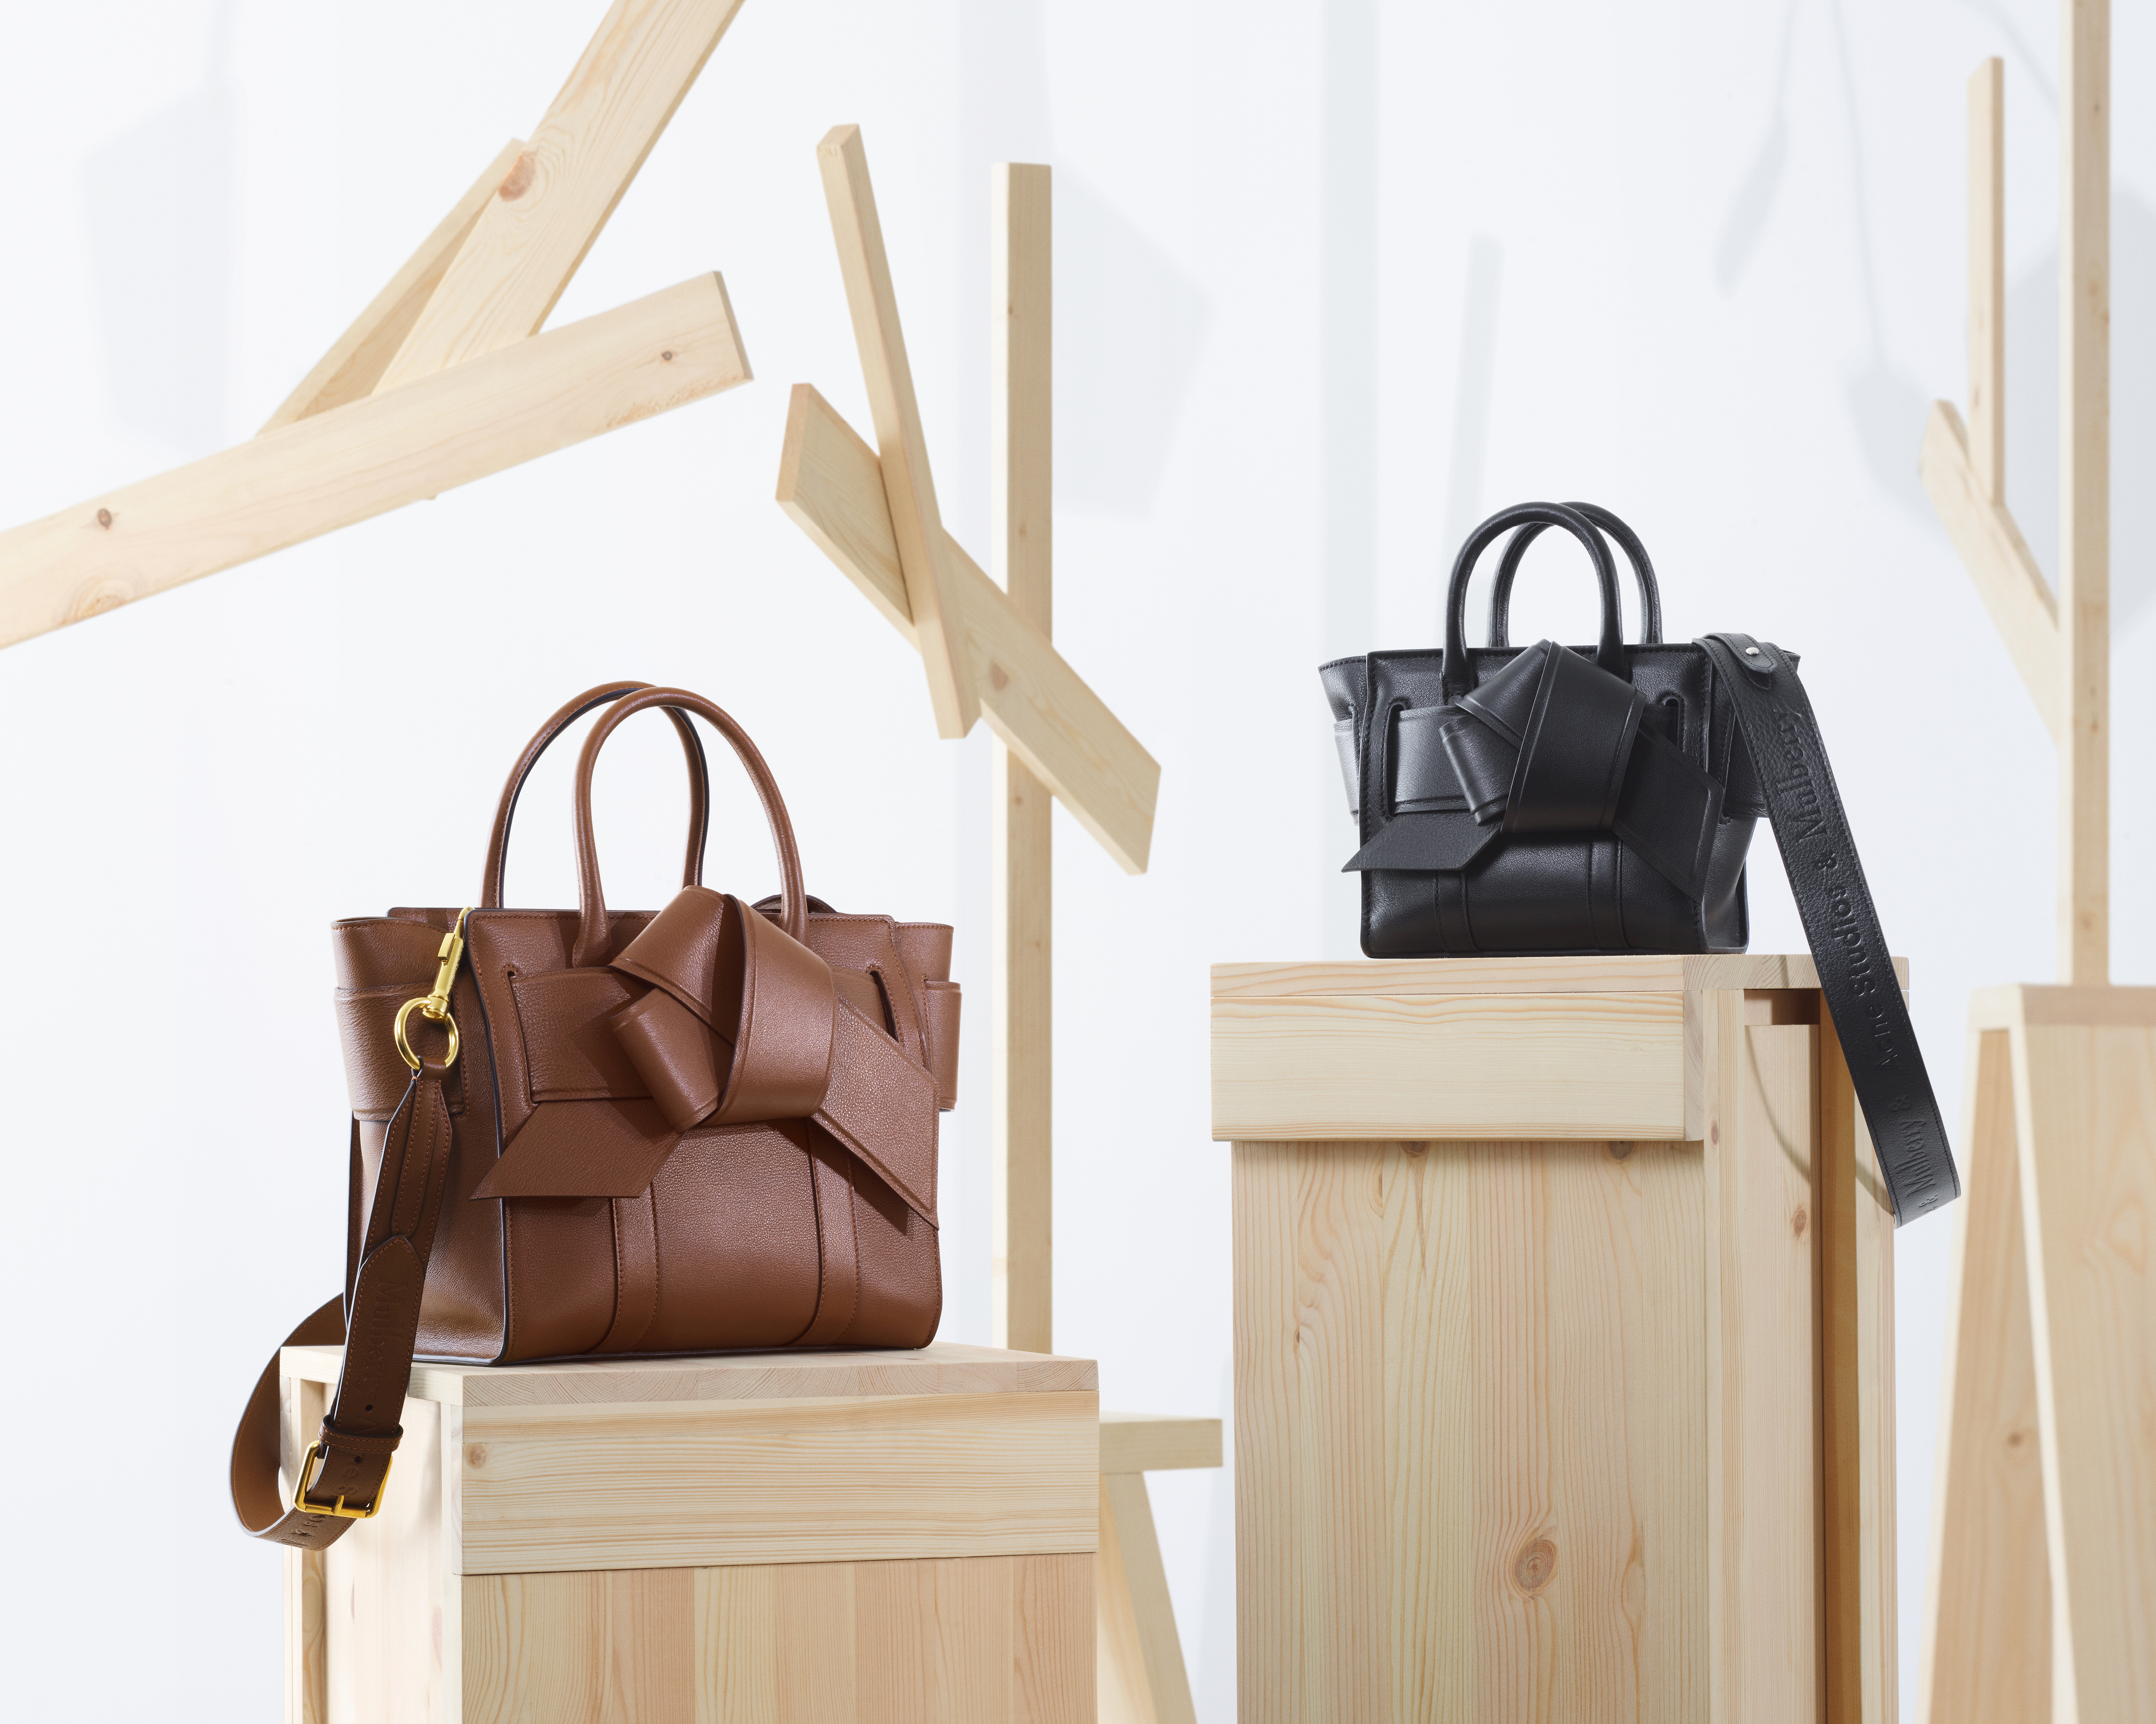 Acne Studios Mulberry 5 - Acne Studios And Mulberry Become Fashion's Latest Odd Couple